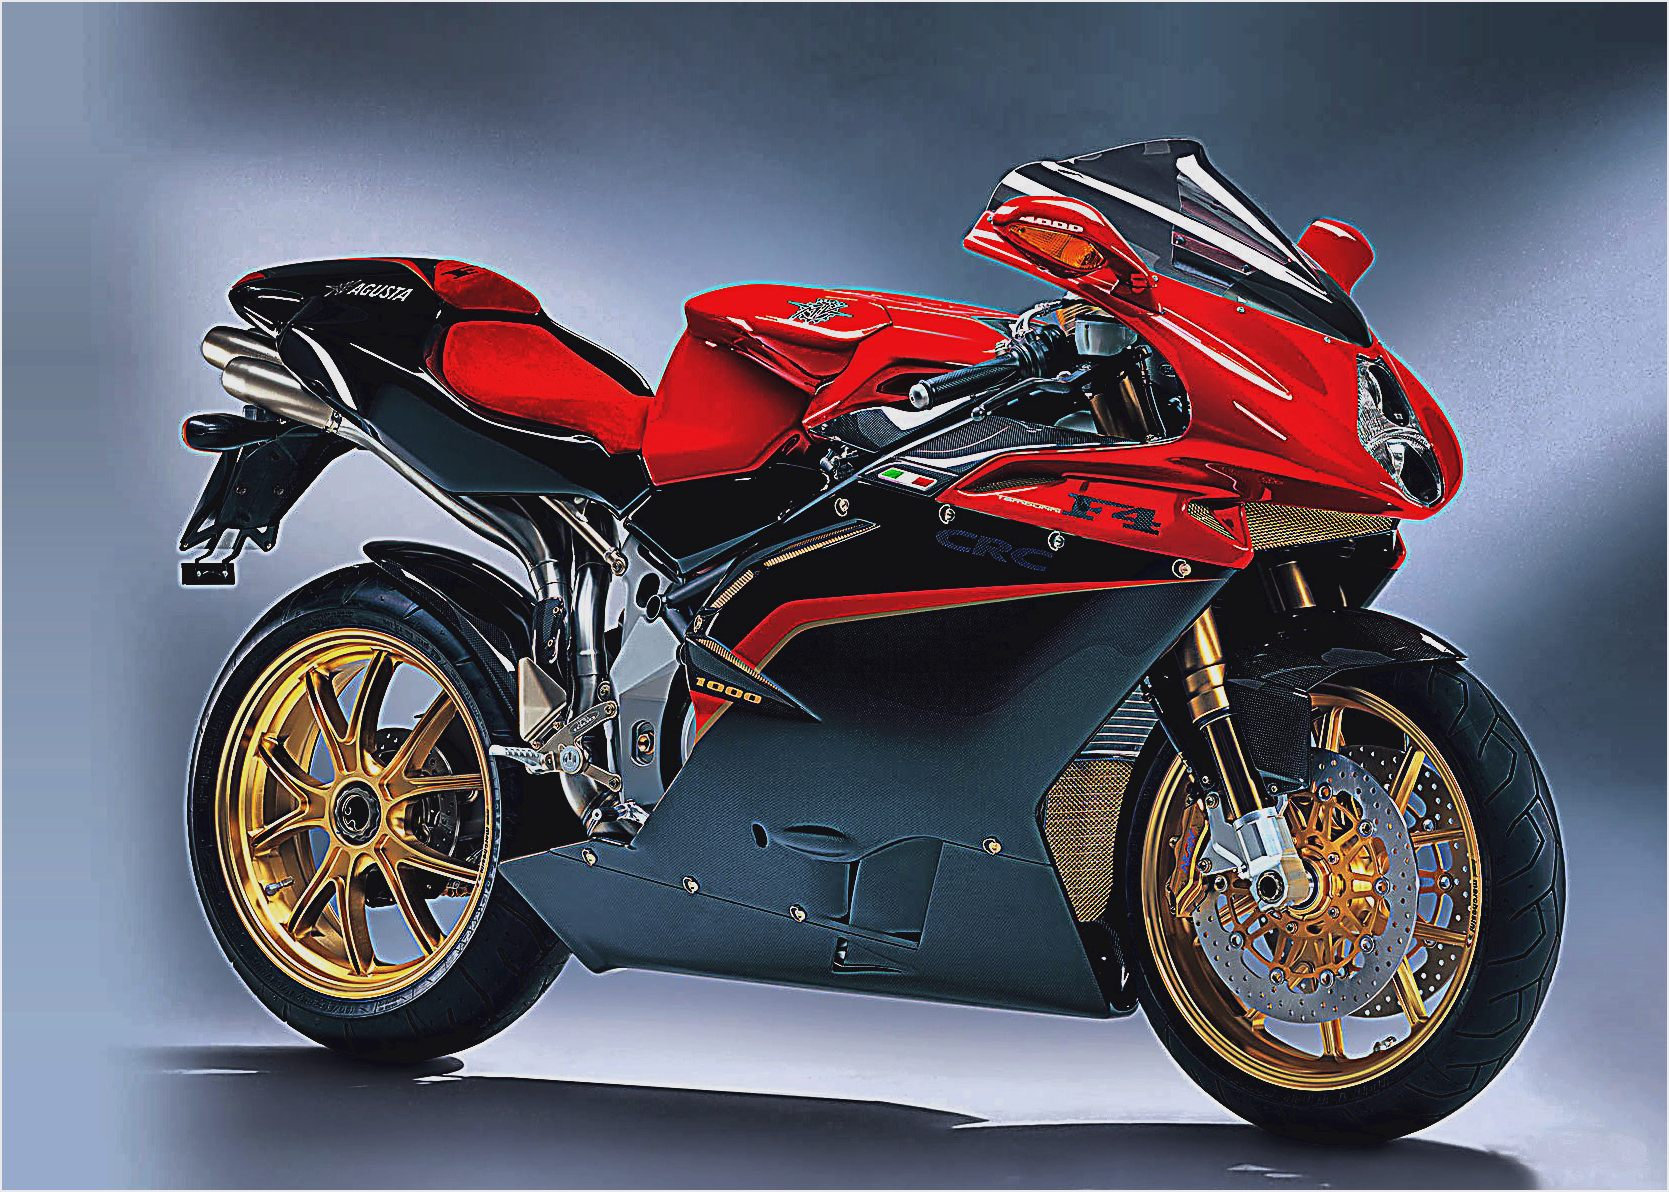 MV Agusta F4 1000 S 2005 images #117055